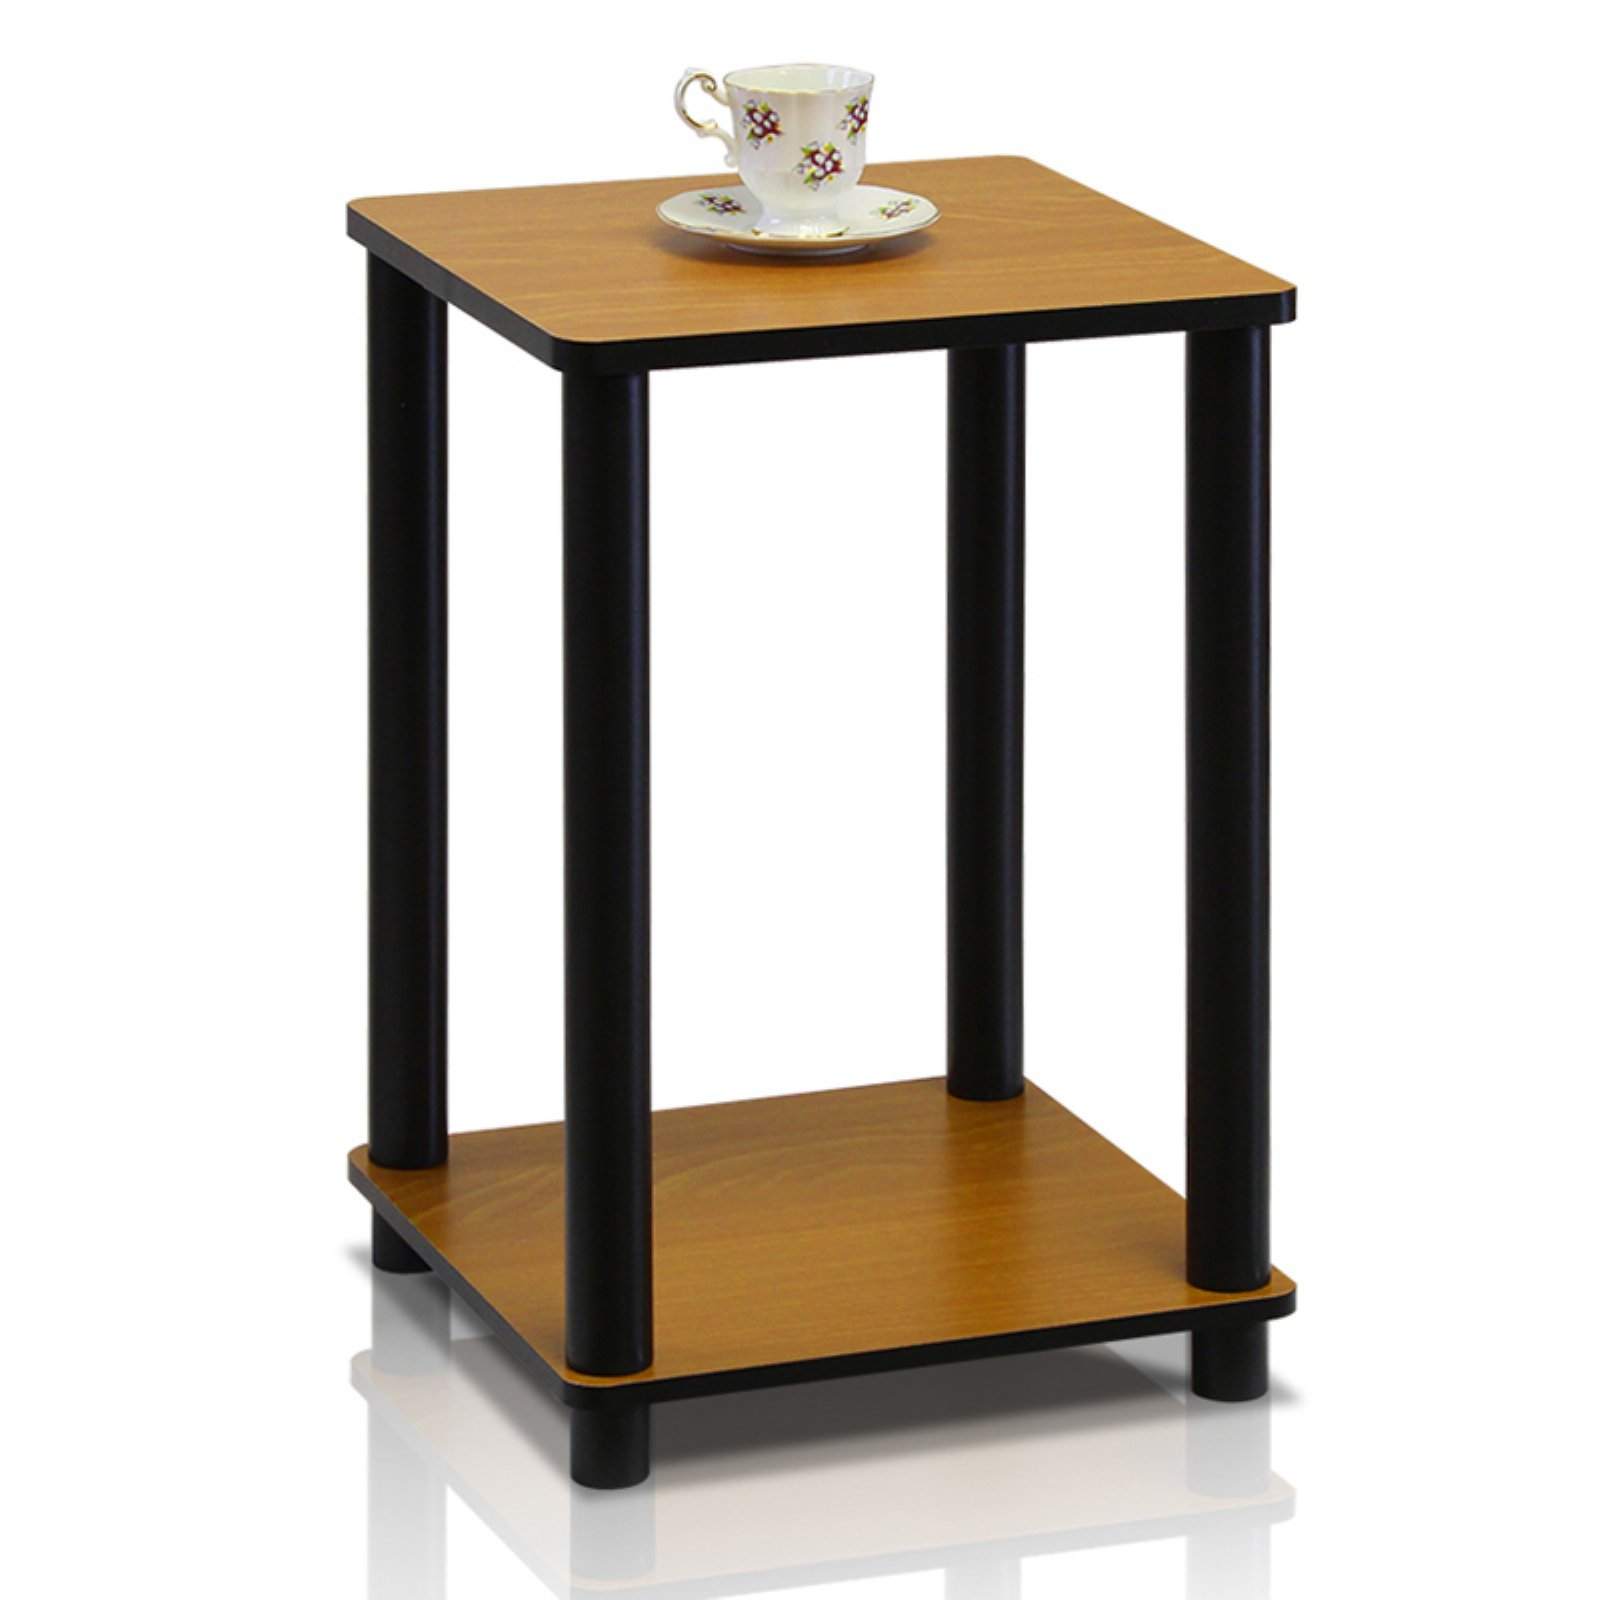 Turn-N-Tube End Table Indoor Plant Stand, Multiple Colors by Furinno